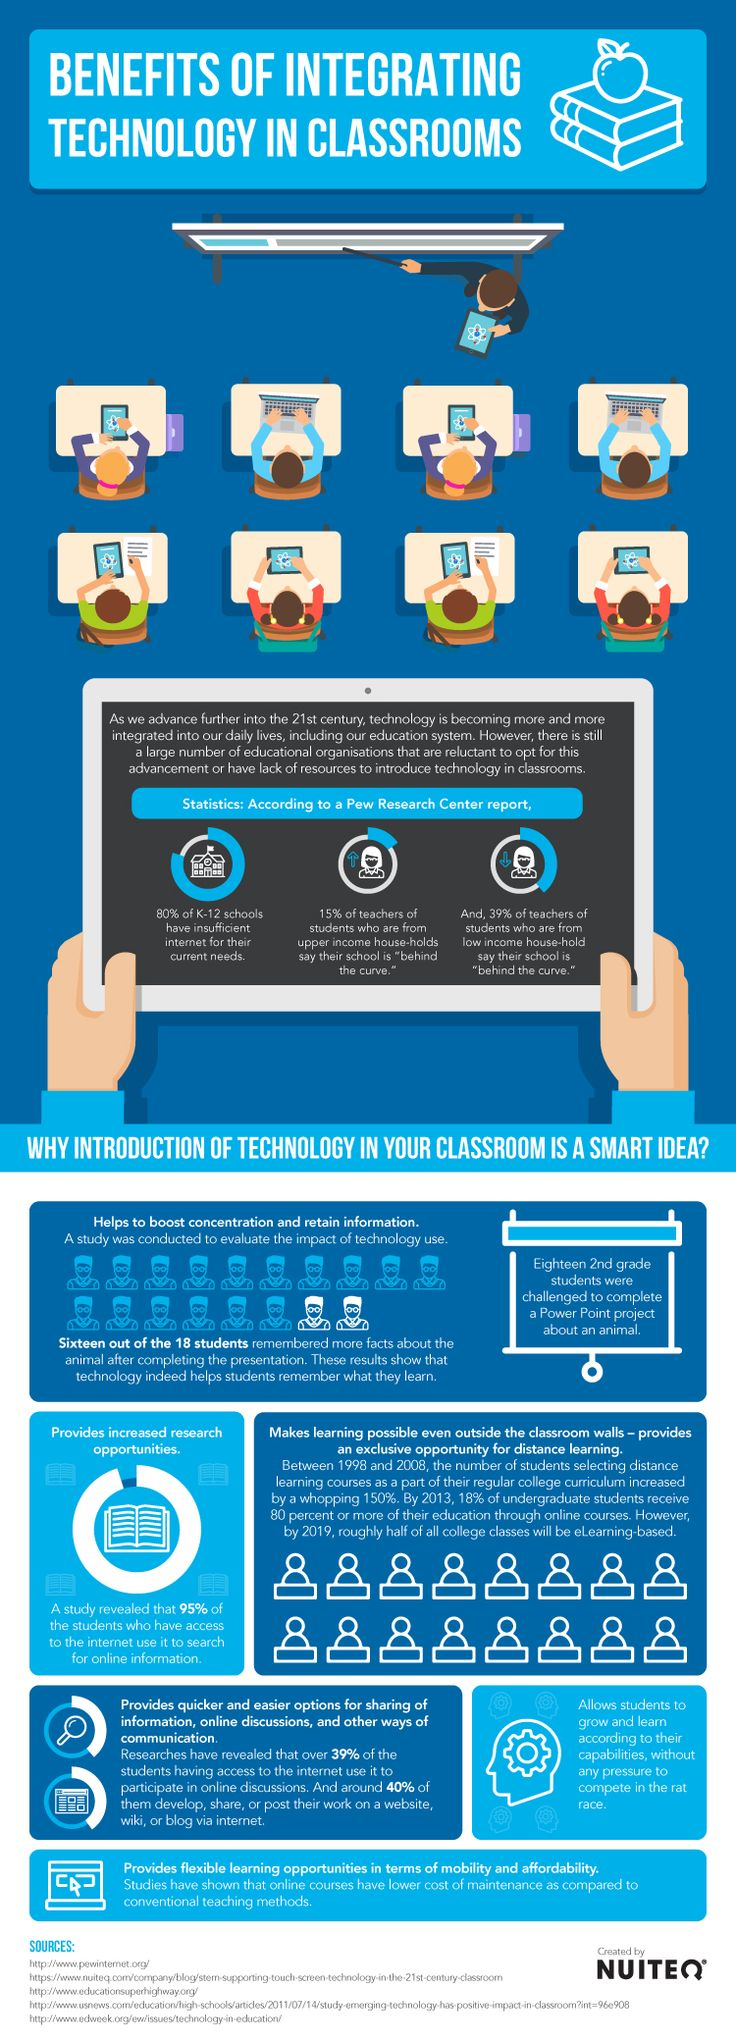 Benefits of Integrating Technology in Classrooms Infographic - http://elearninginfographics.com/integrating-technology-classrooms-infographic/